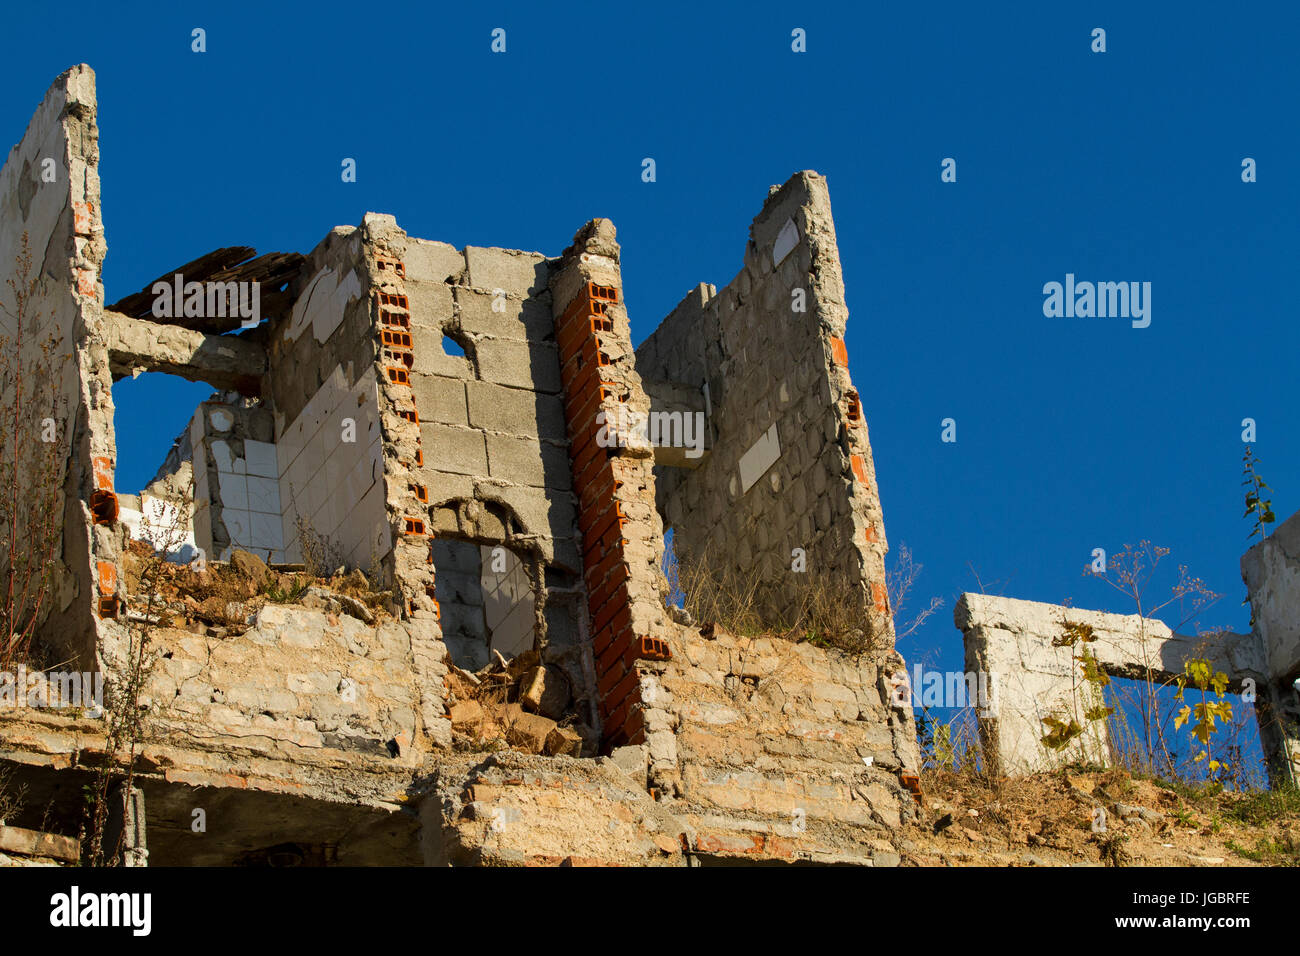 A building destroyed by war, Bosnia. - Stock Image